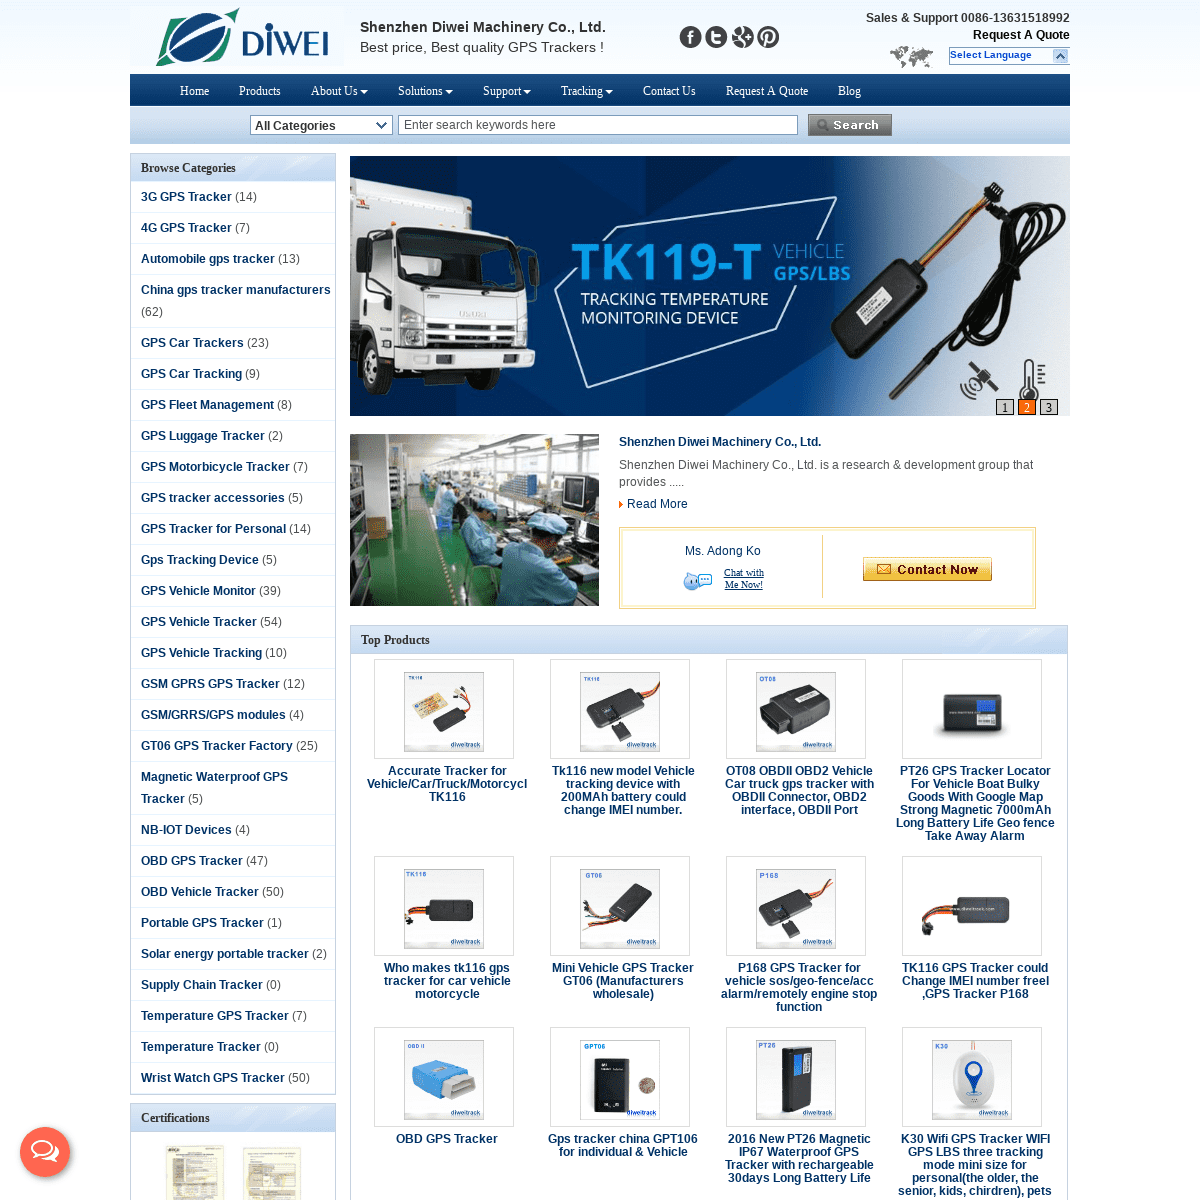 DiweiTrack- Reliable GPS Tracking Solutions, GPS Device Manufacturers